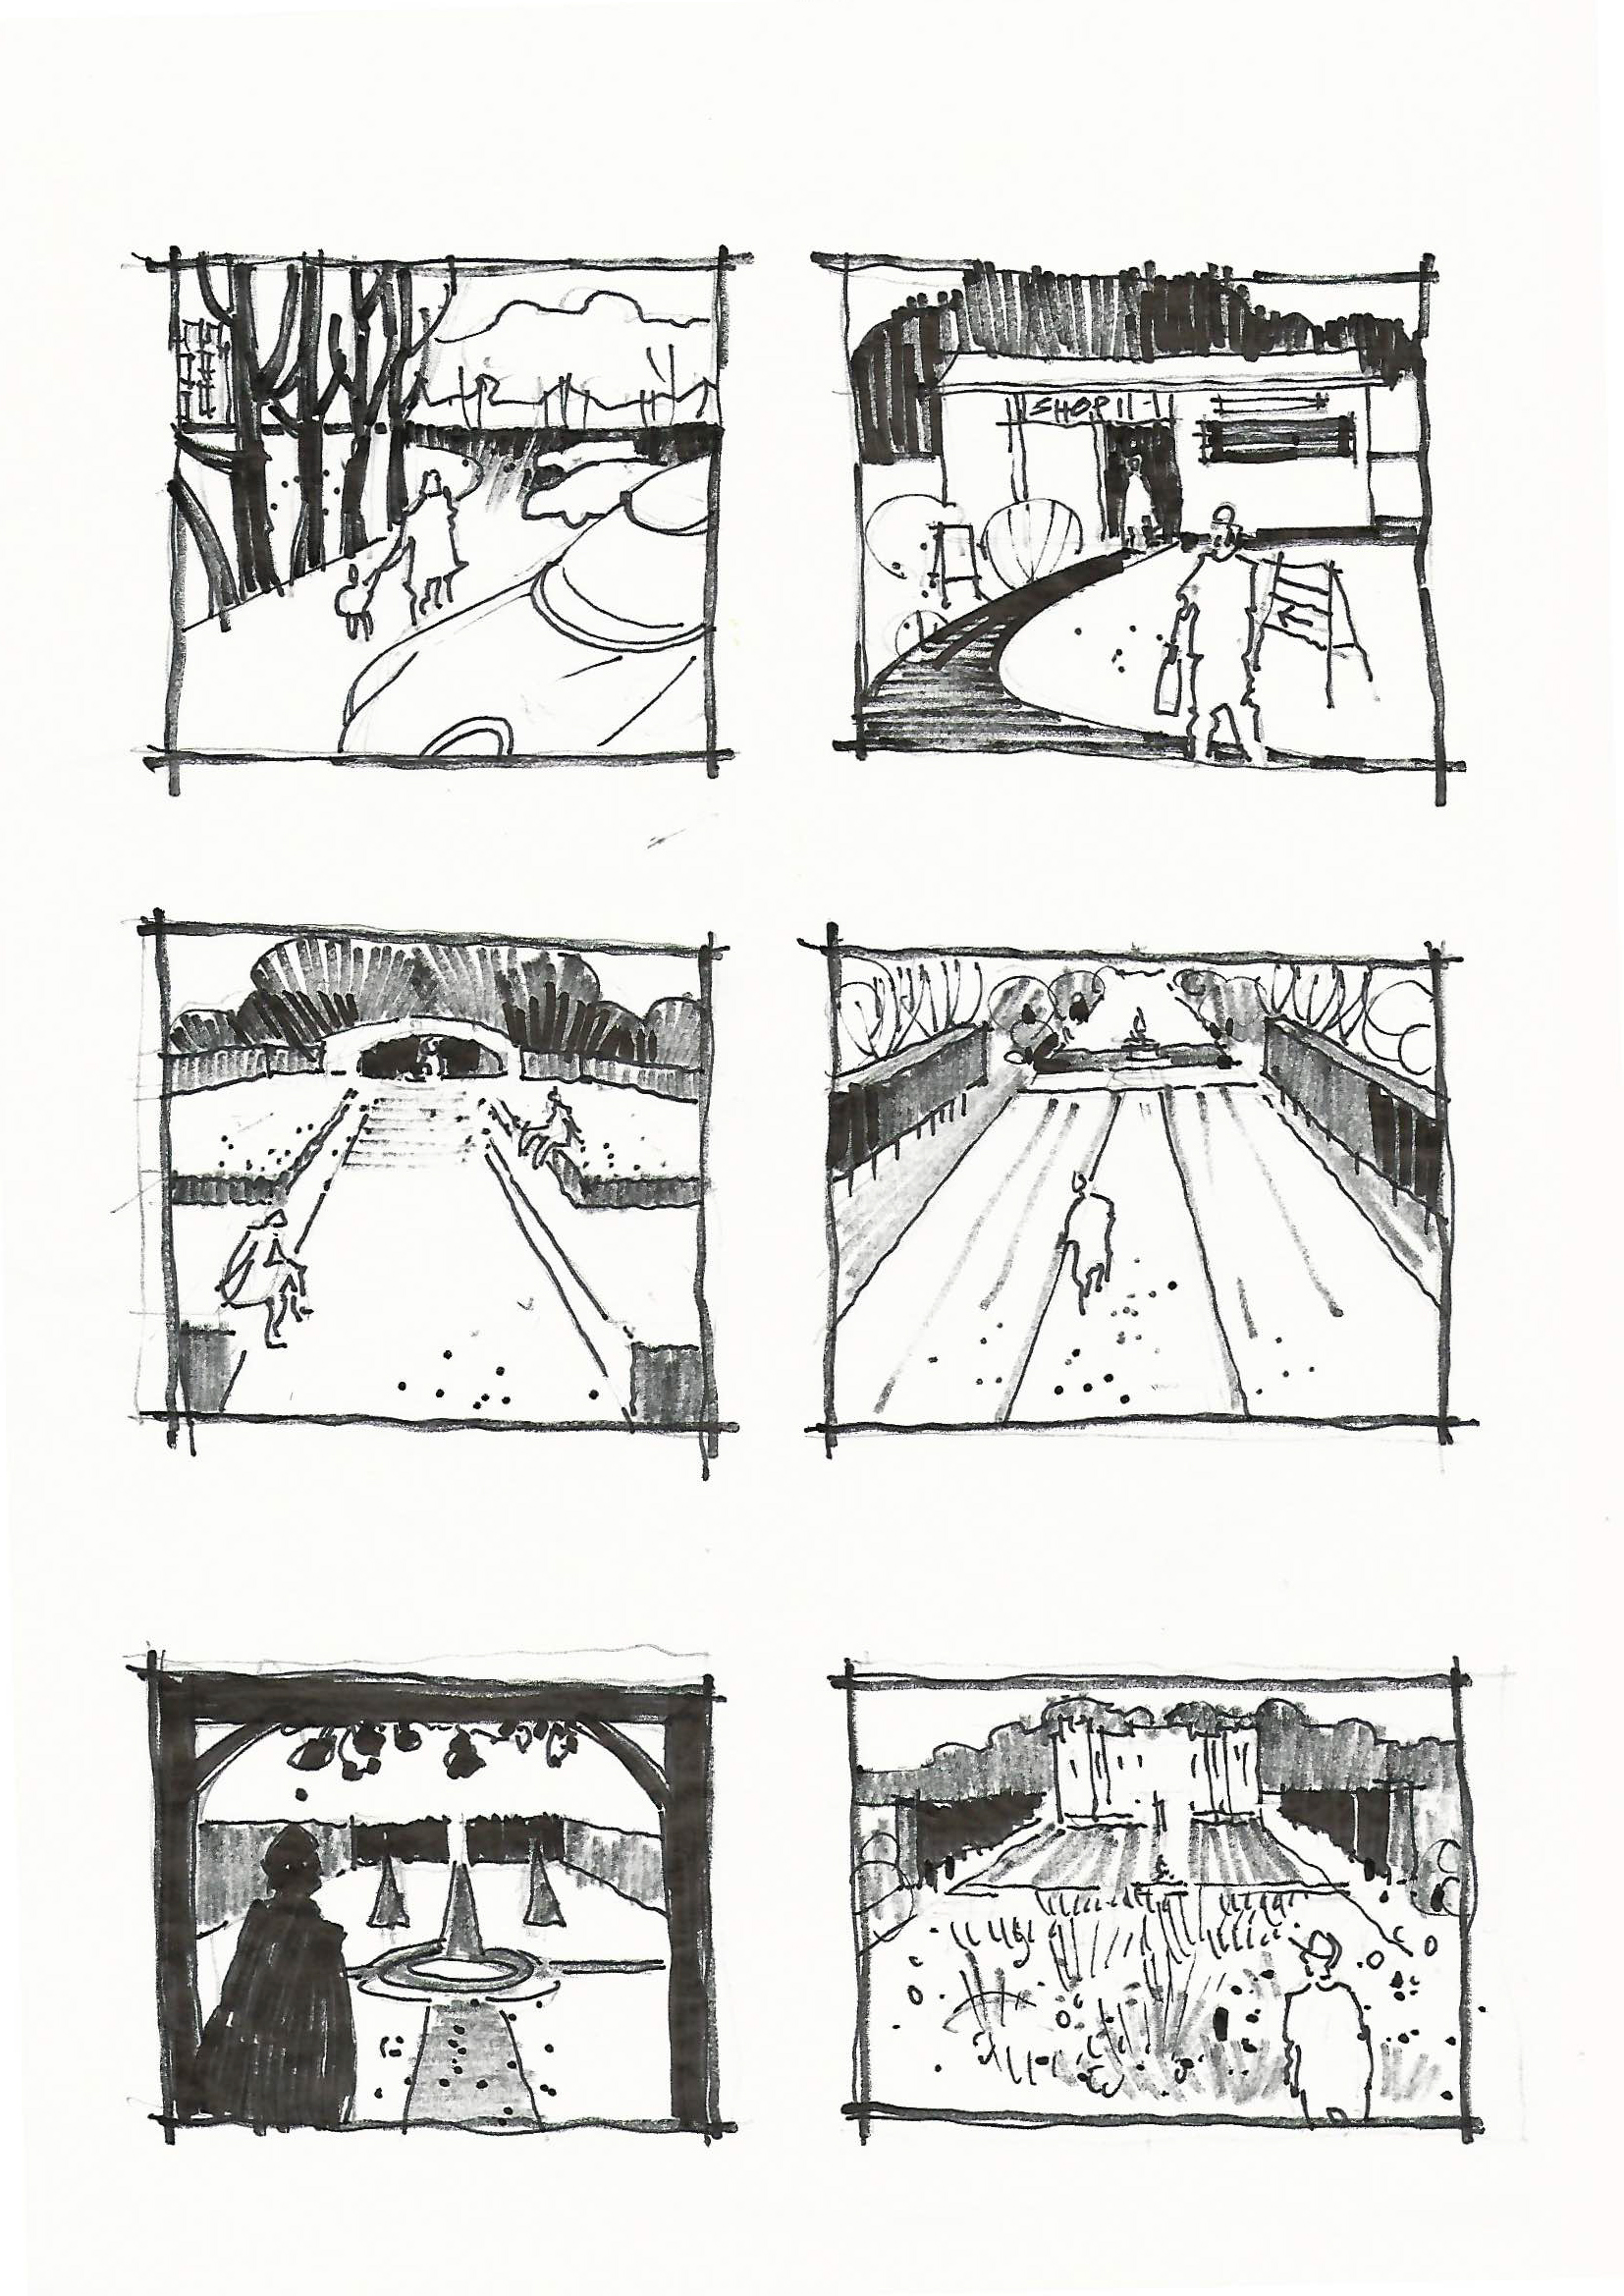 Storyboard, part of a successful project bid